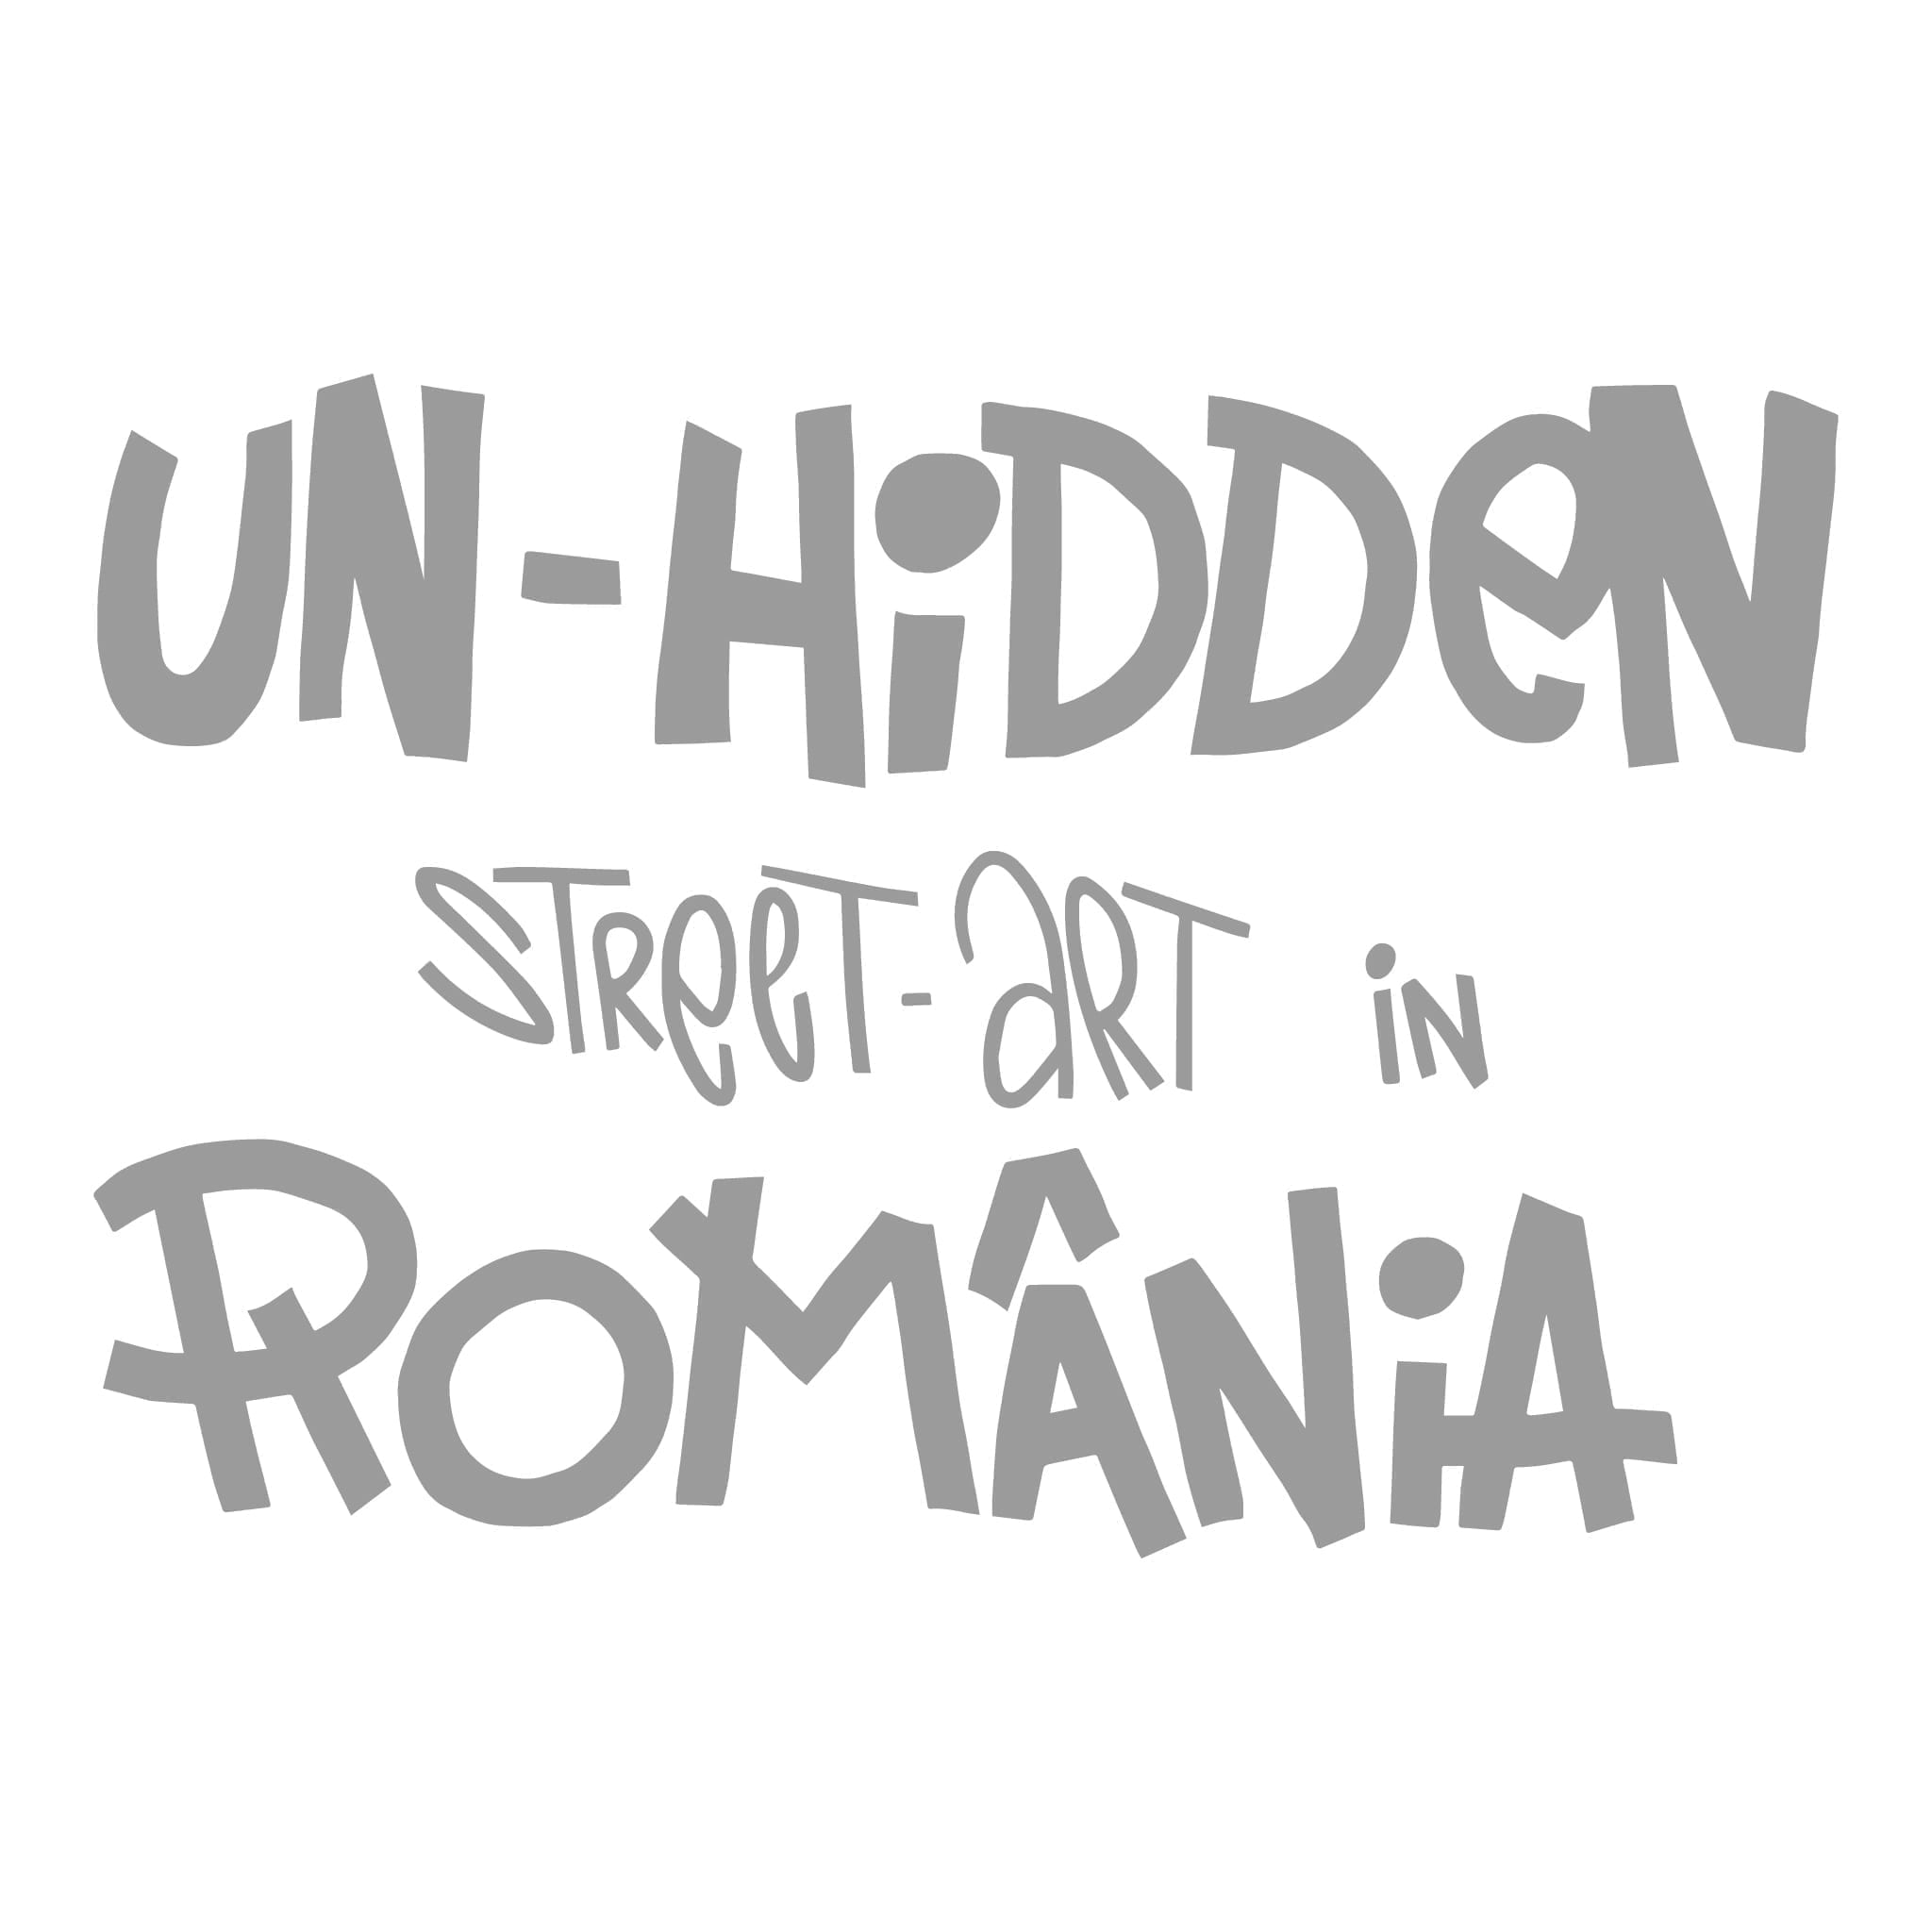 Un-hidden Street Art in Romania logo